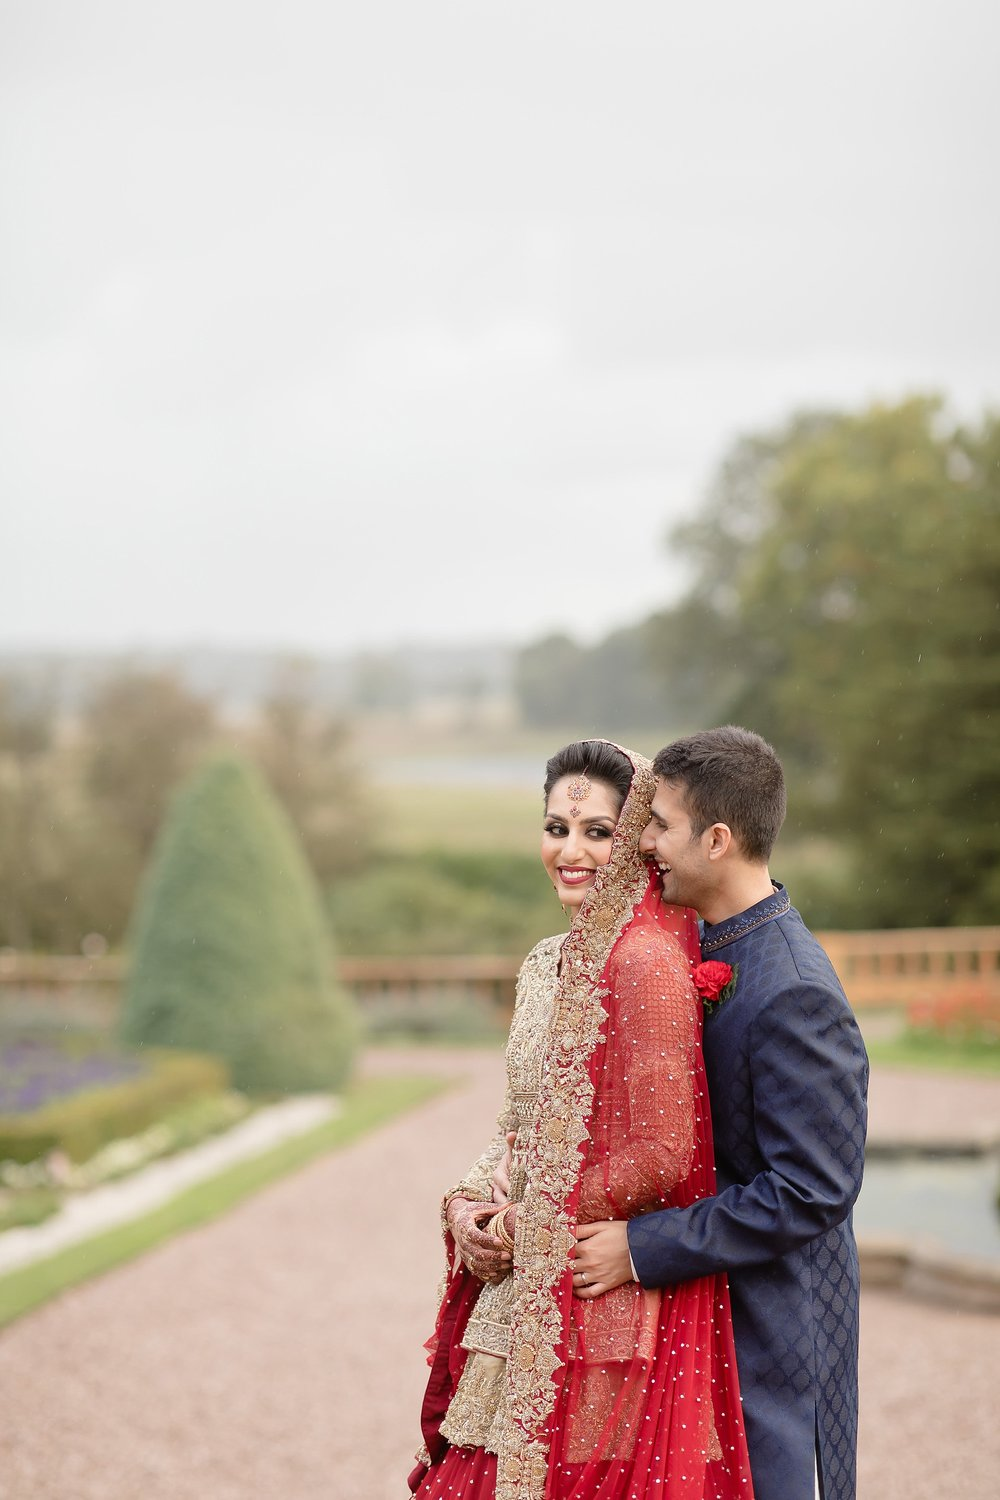 zehra female photographer tatton park wedding_0027.jpg